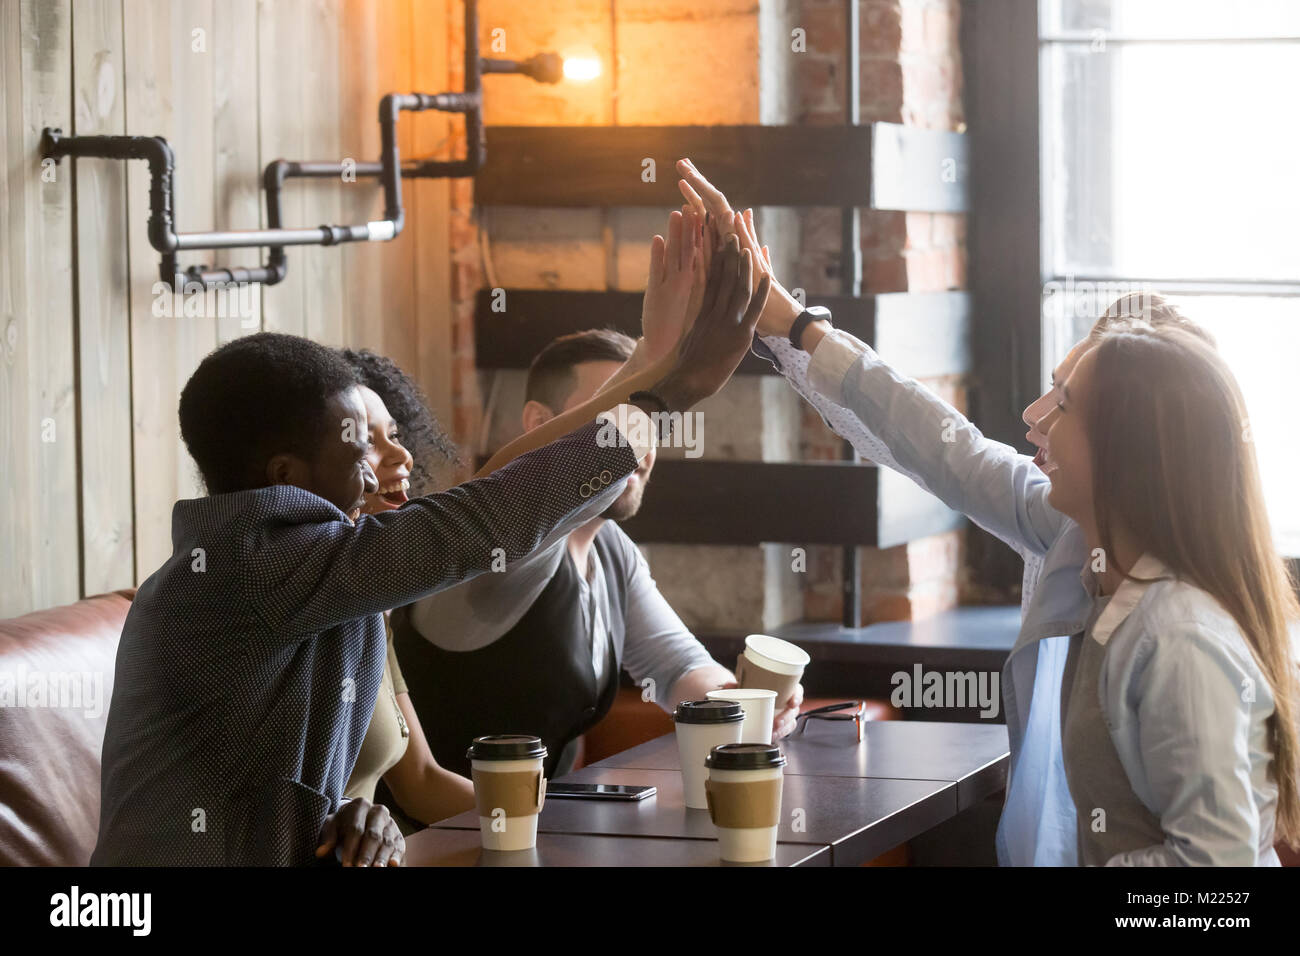 Diverse friends join hands together giving high-five at cafe mee - Stock Image